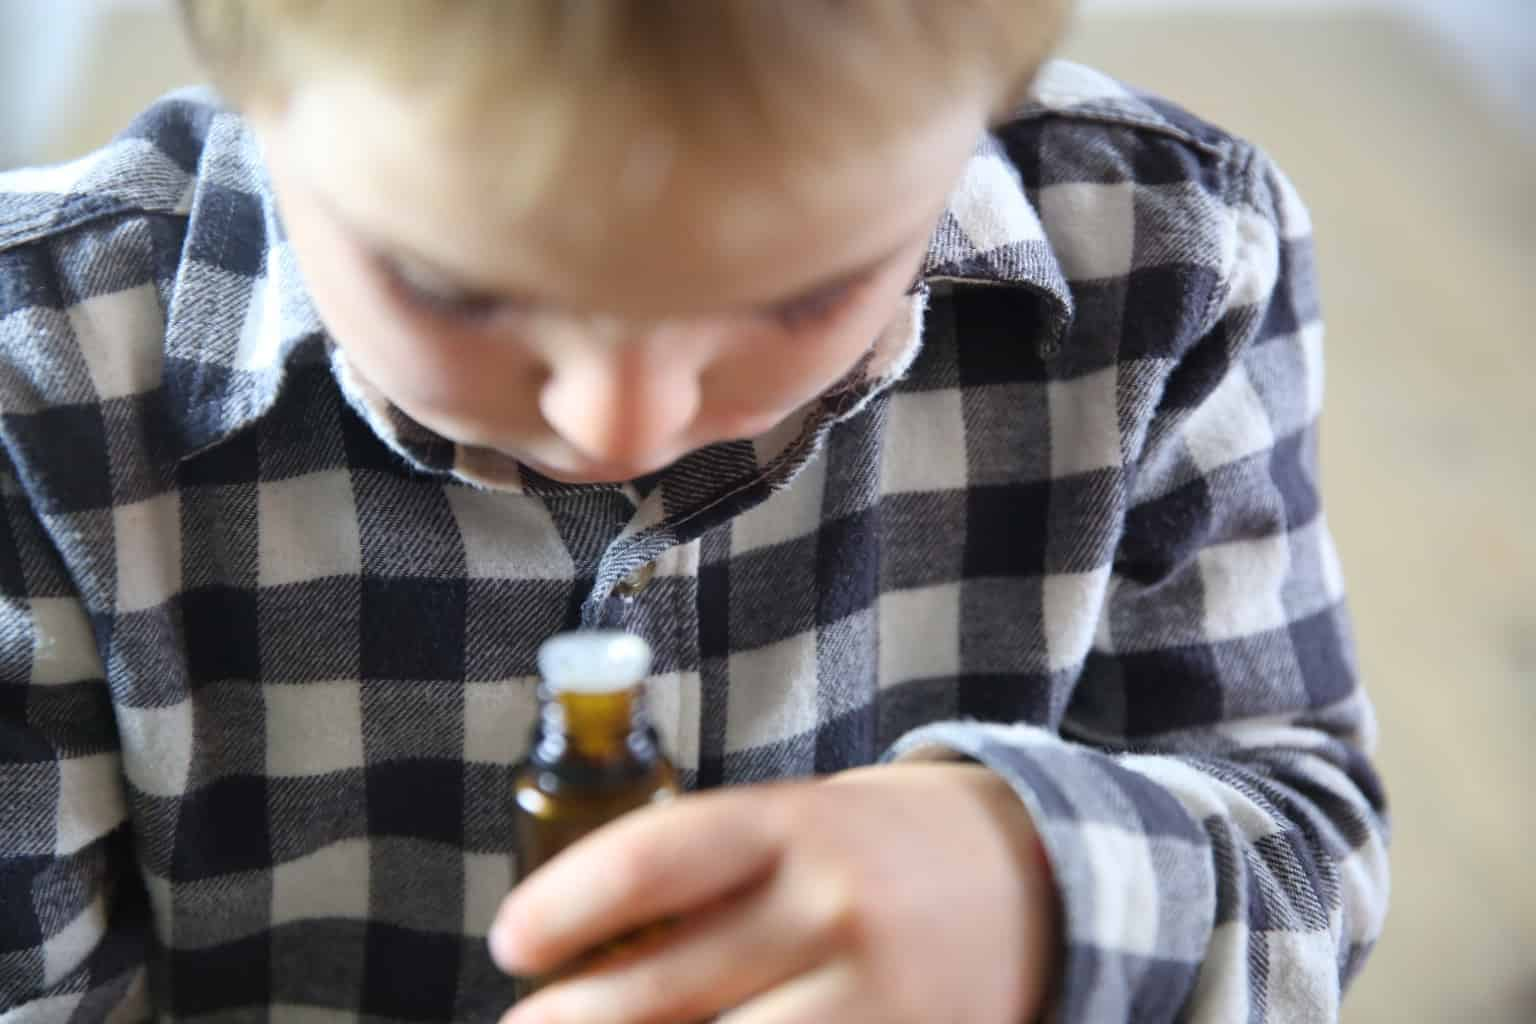 A little boy smelling essential oil from the bottle.